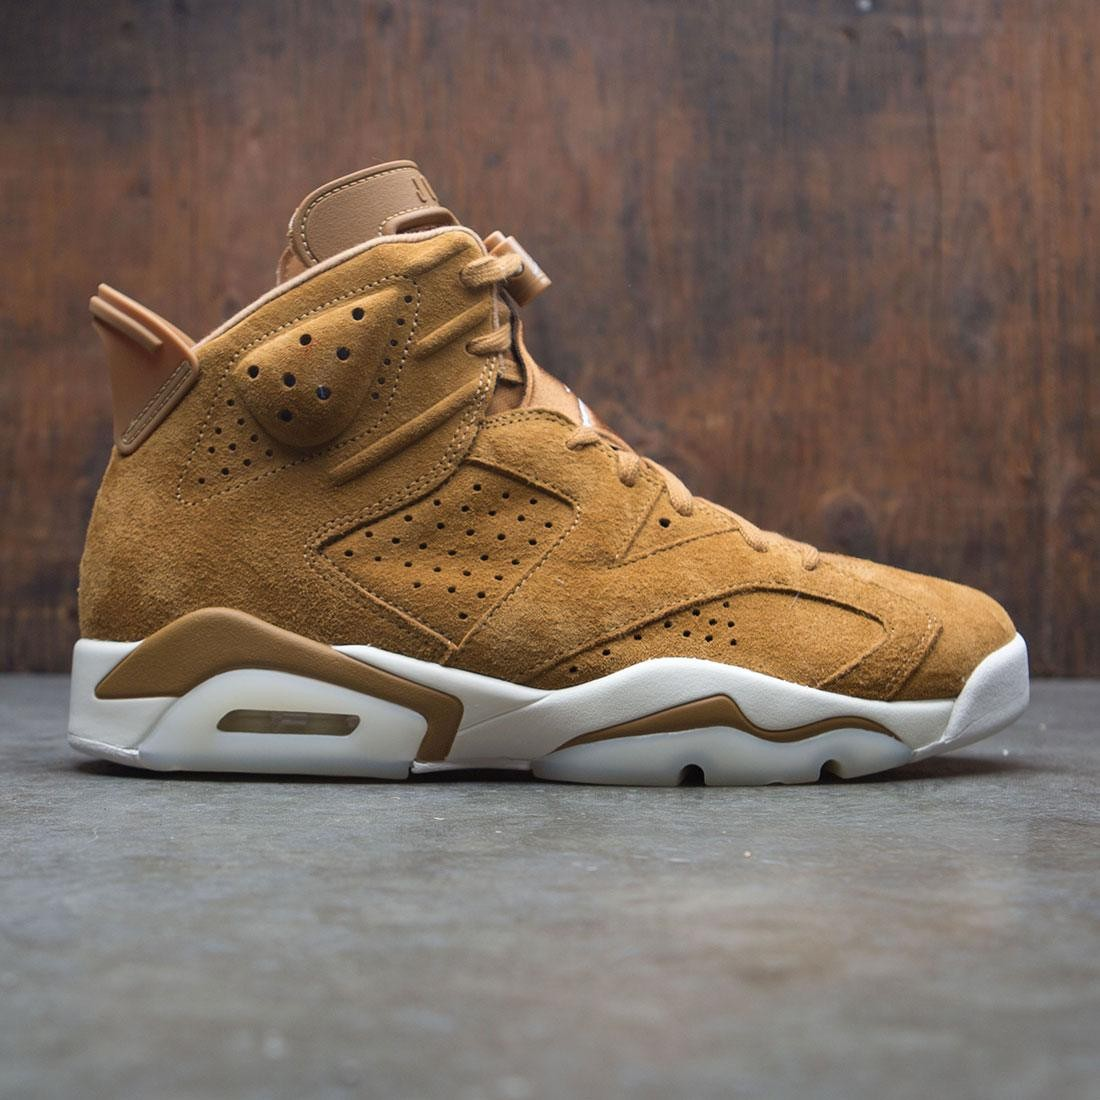 babdf5a07e9fd9 jordan men air jordan 6 retro golden harvest golden harvest sail